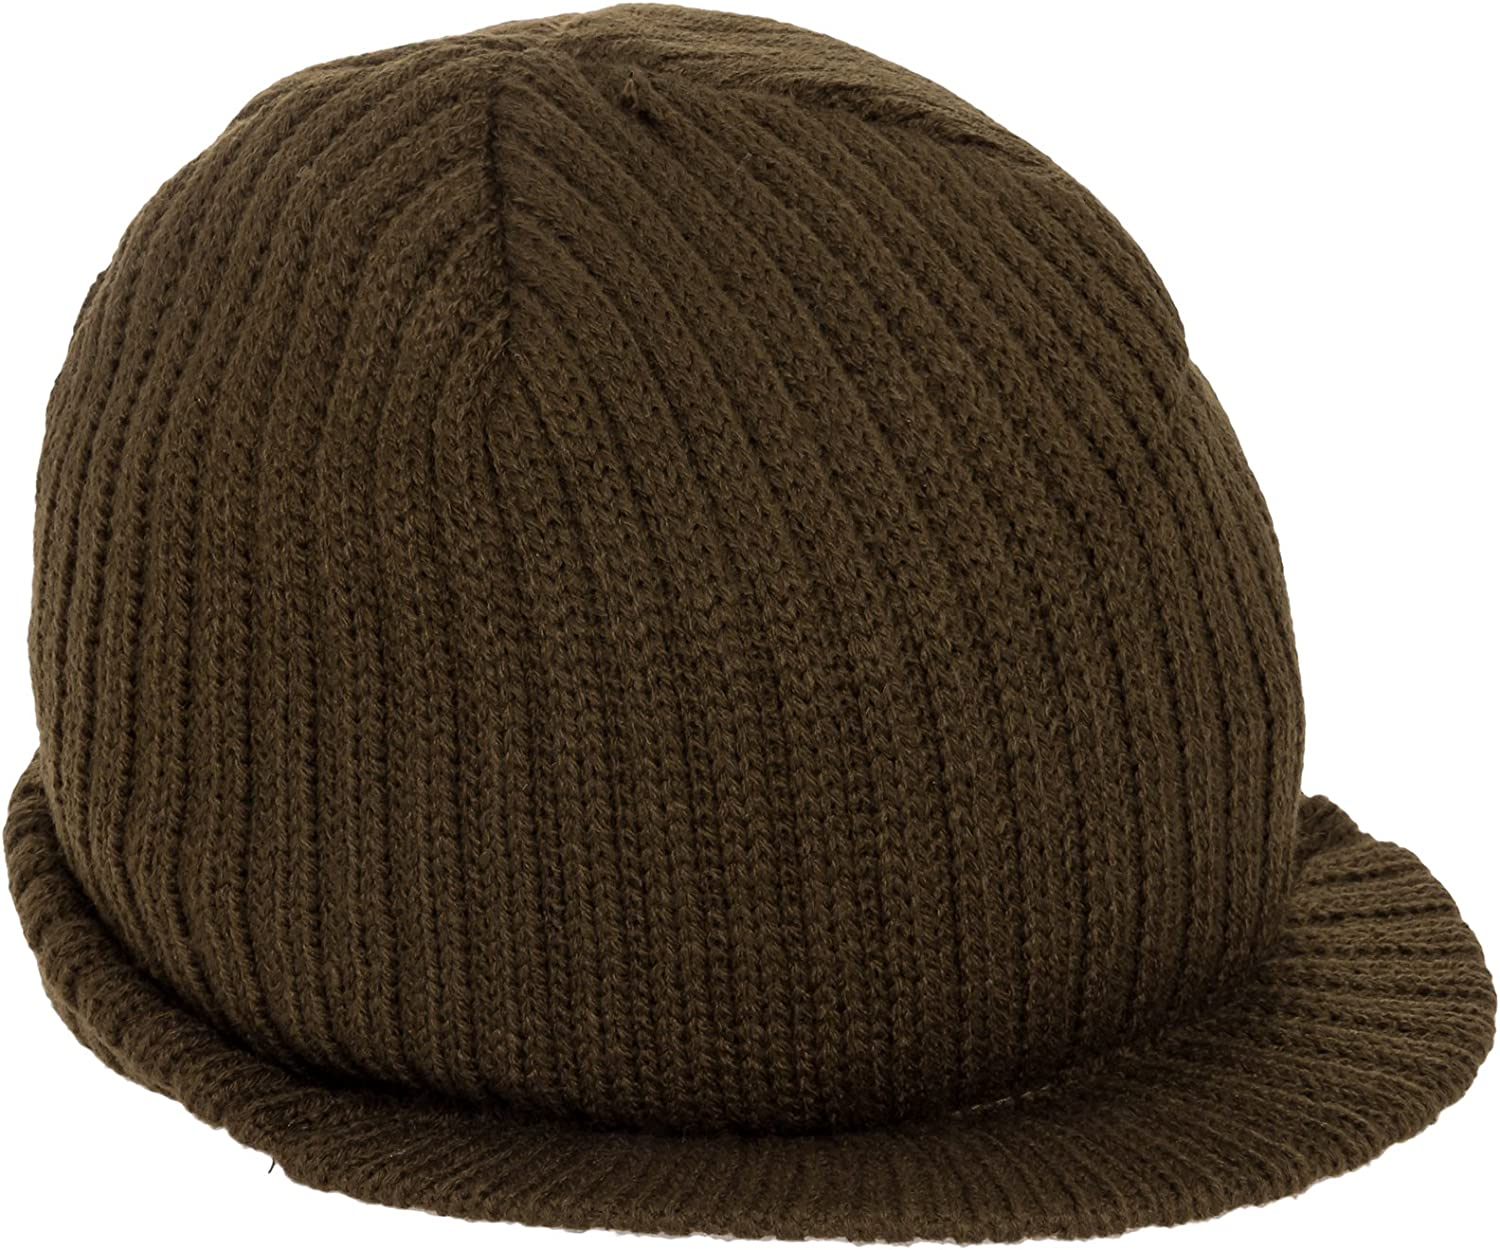 Decky Knit Visor Beanie Campus Jeep Cap Many Colors Available